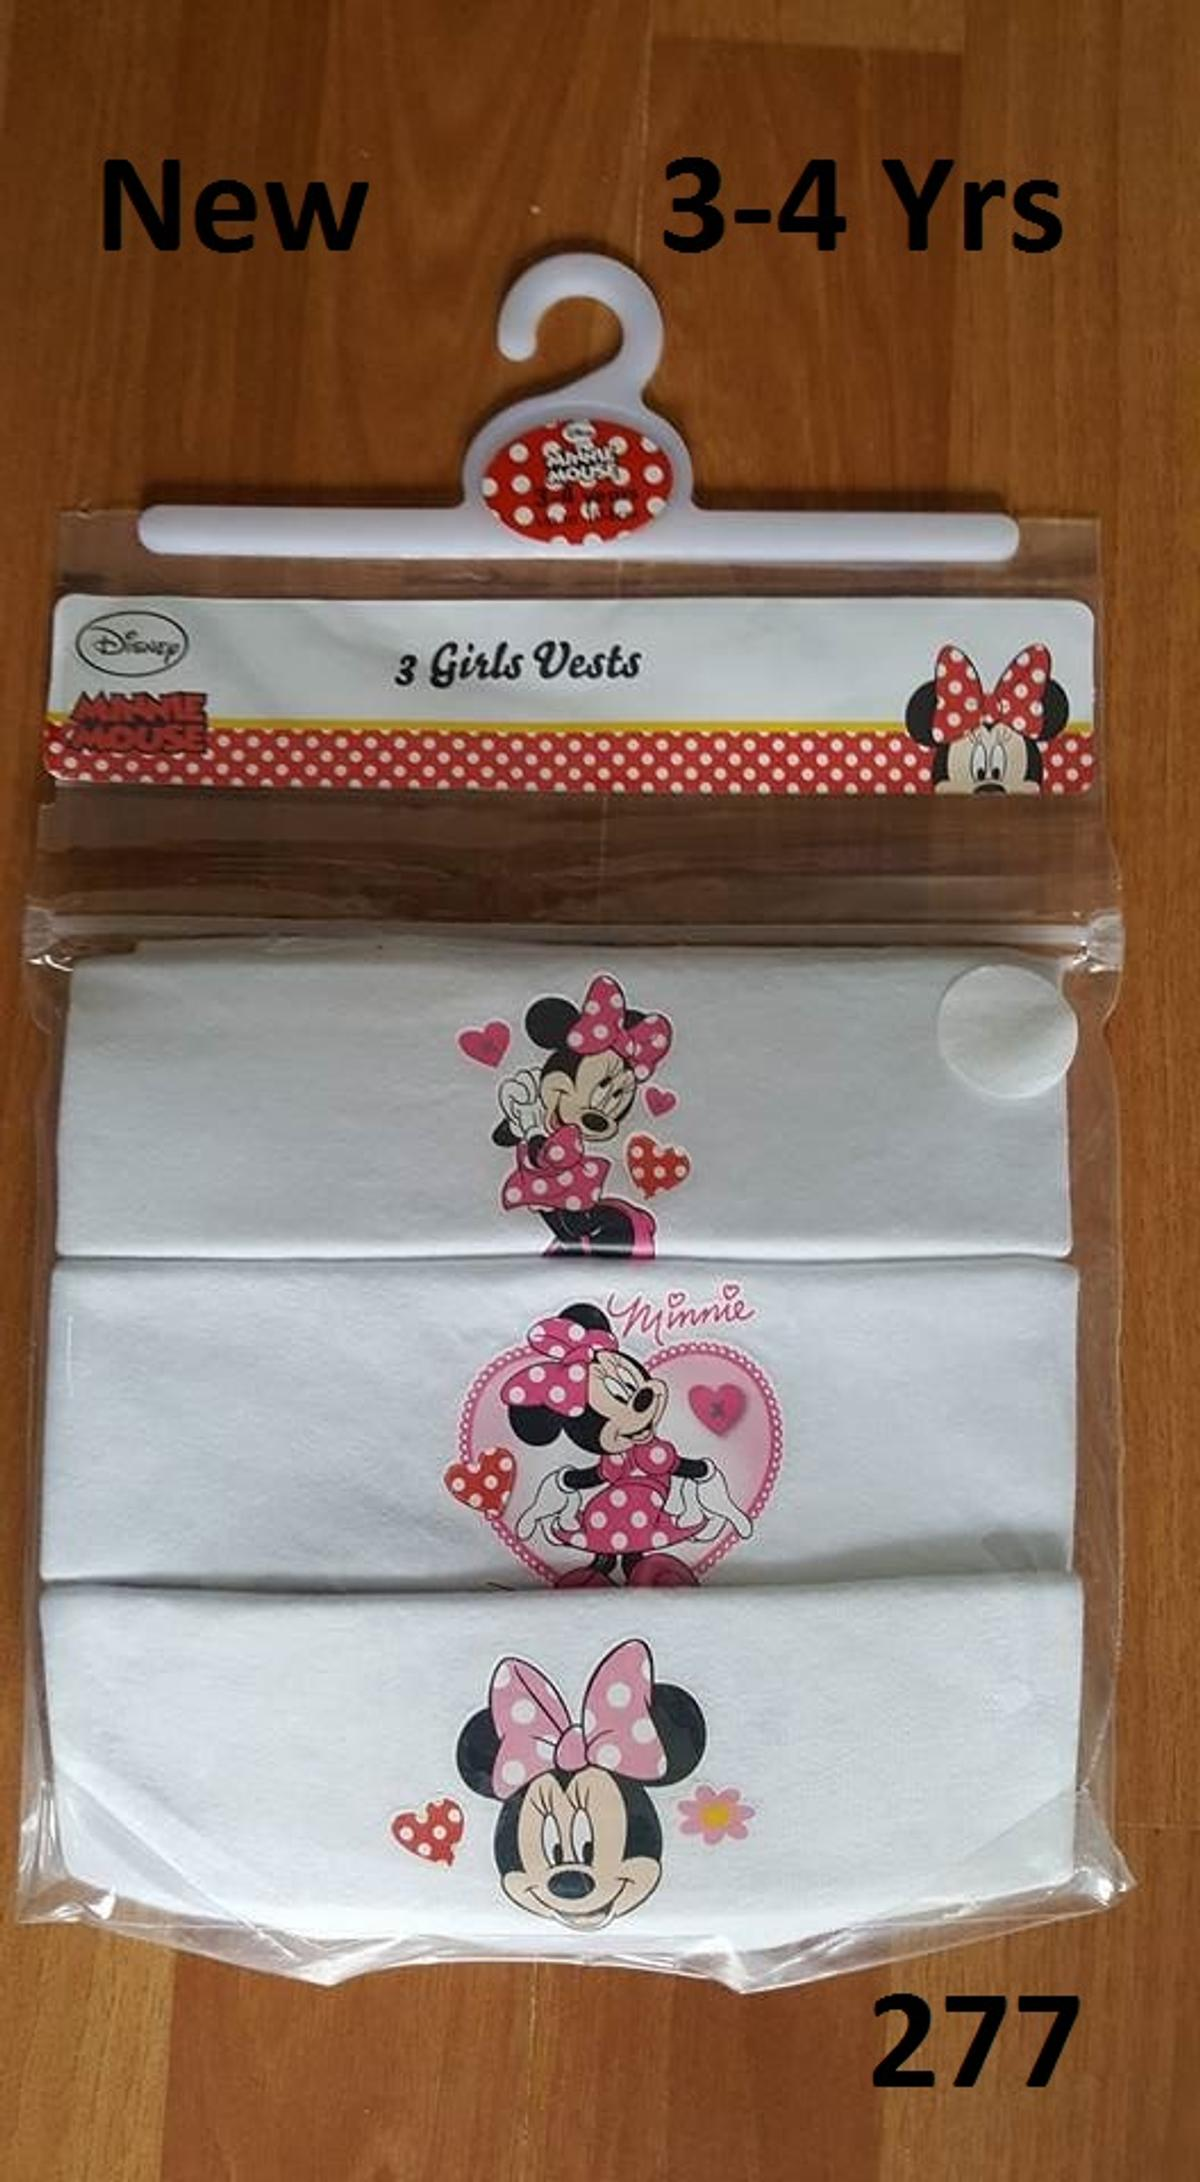 Brand New in Packaging Disney's Minnie Mouse Vests with a pink design in the middle in size 3-4 years. Pack of 3 vests. Have more children's items available. I do NOT sell anything that I wouldn't want to receive myself. Selling elsewhere too. Collection from Shefford. Could possibly post within UK at your cost. Ideally bank transfer or Paypal payment through friends and family ONLY. Social Distancing rules apply. £4.00. (277).